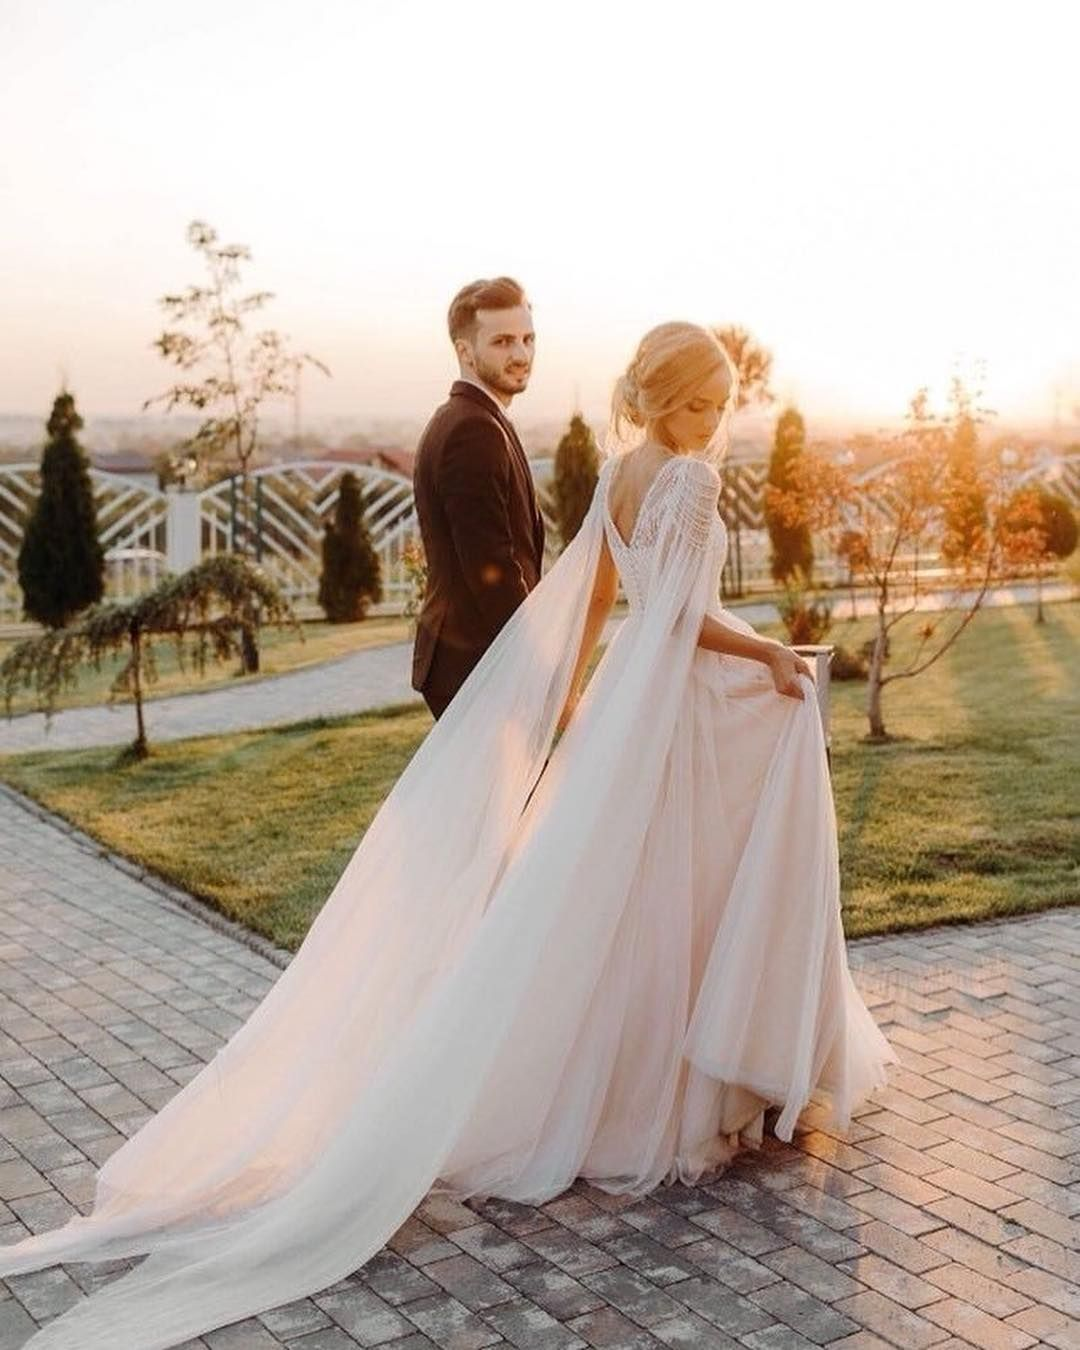 Cream colored vintage wedding dresses  Pin by Vicki Wrobel on Wedding  Pinterest  Wedding Wedding